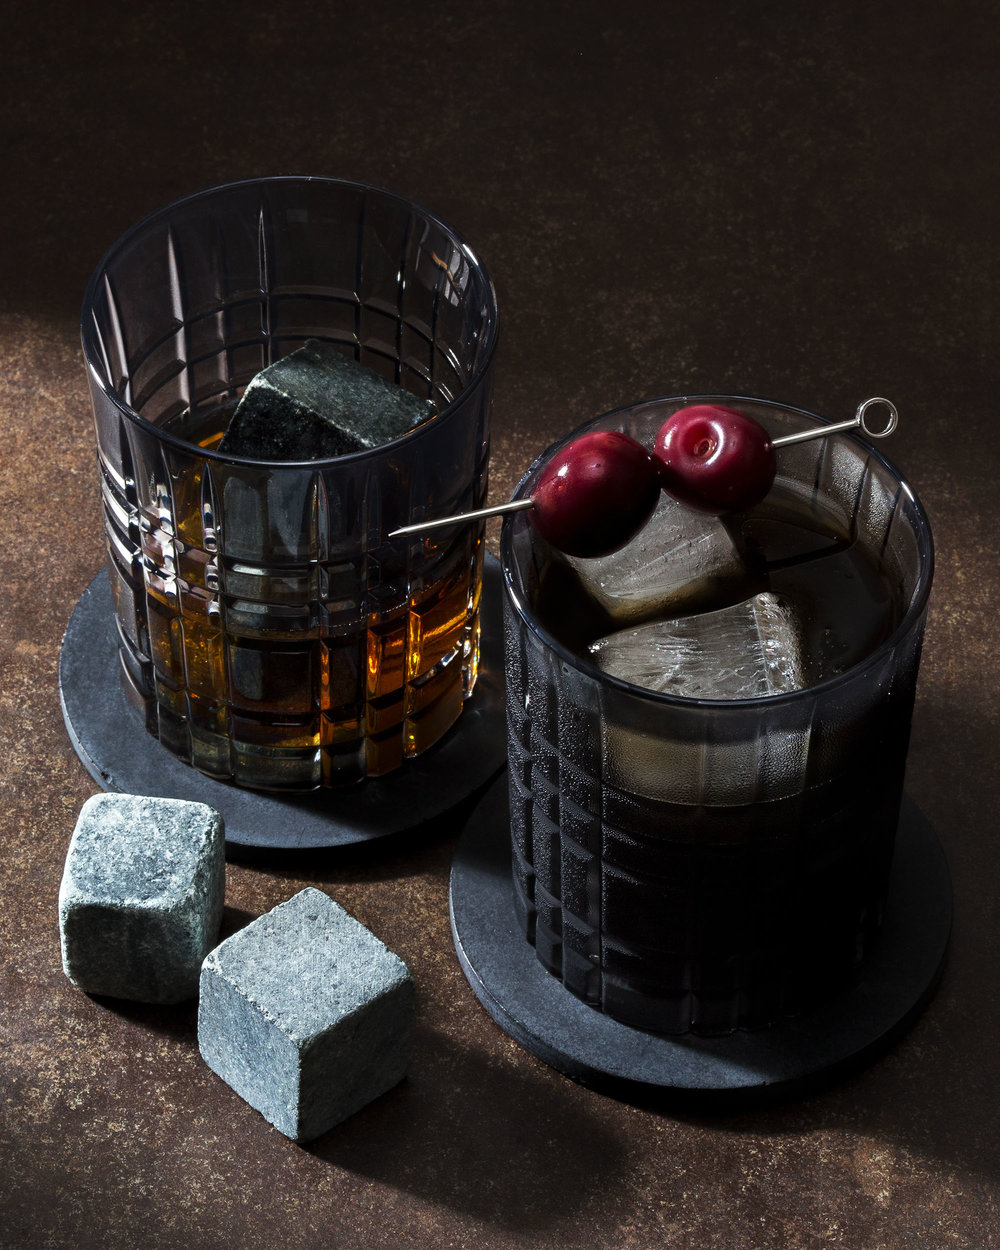 whisky-charcoal-cocktail-tumblr-cherry-manhattan-2.jpg